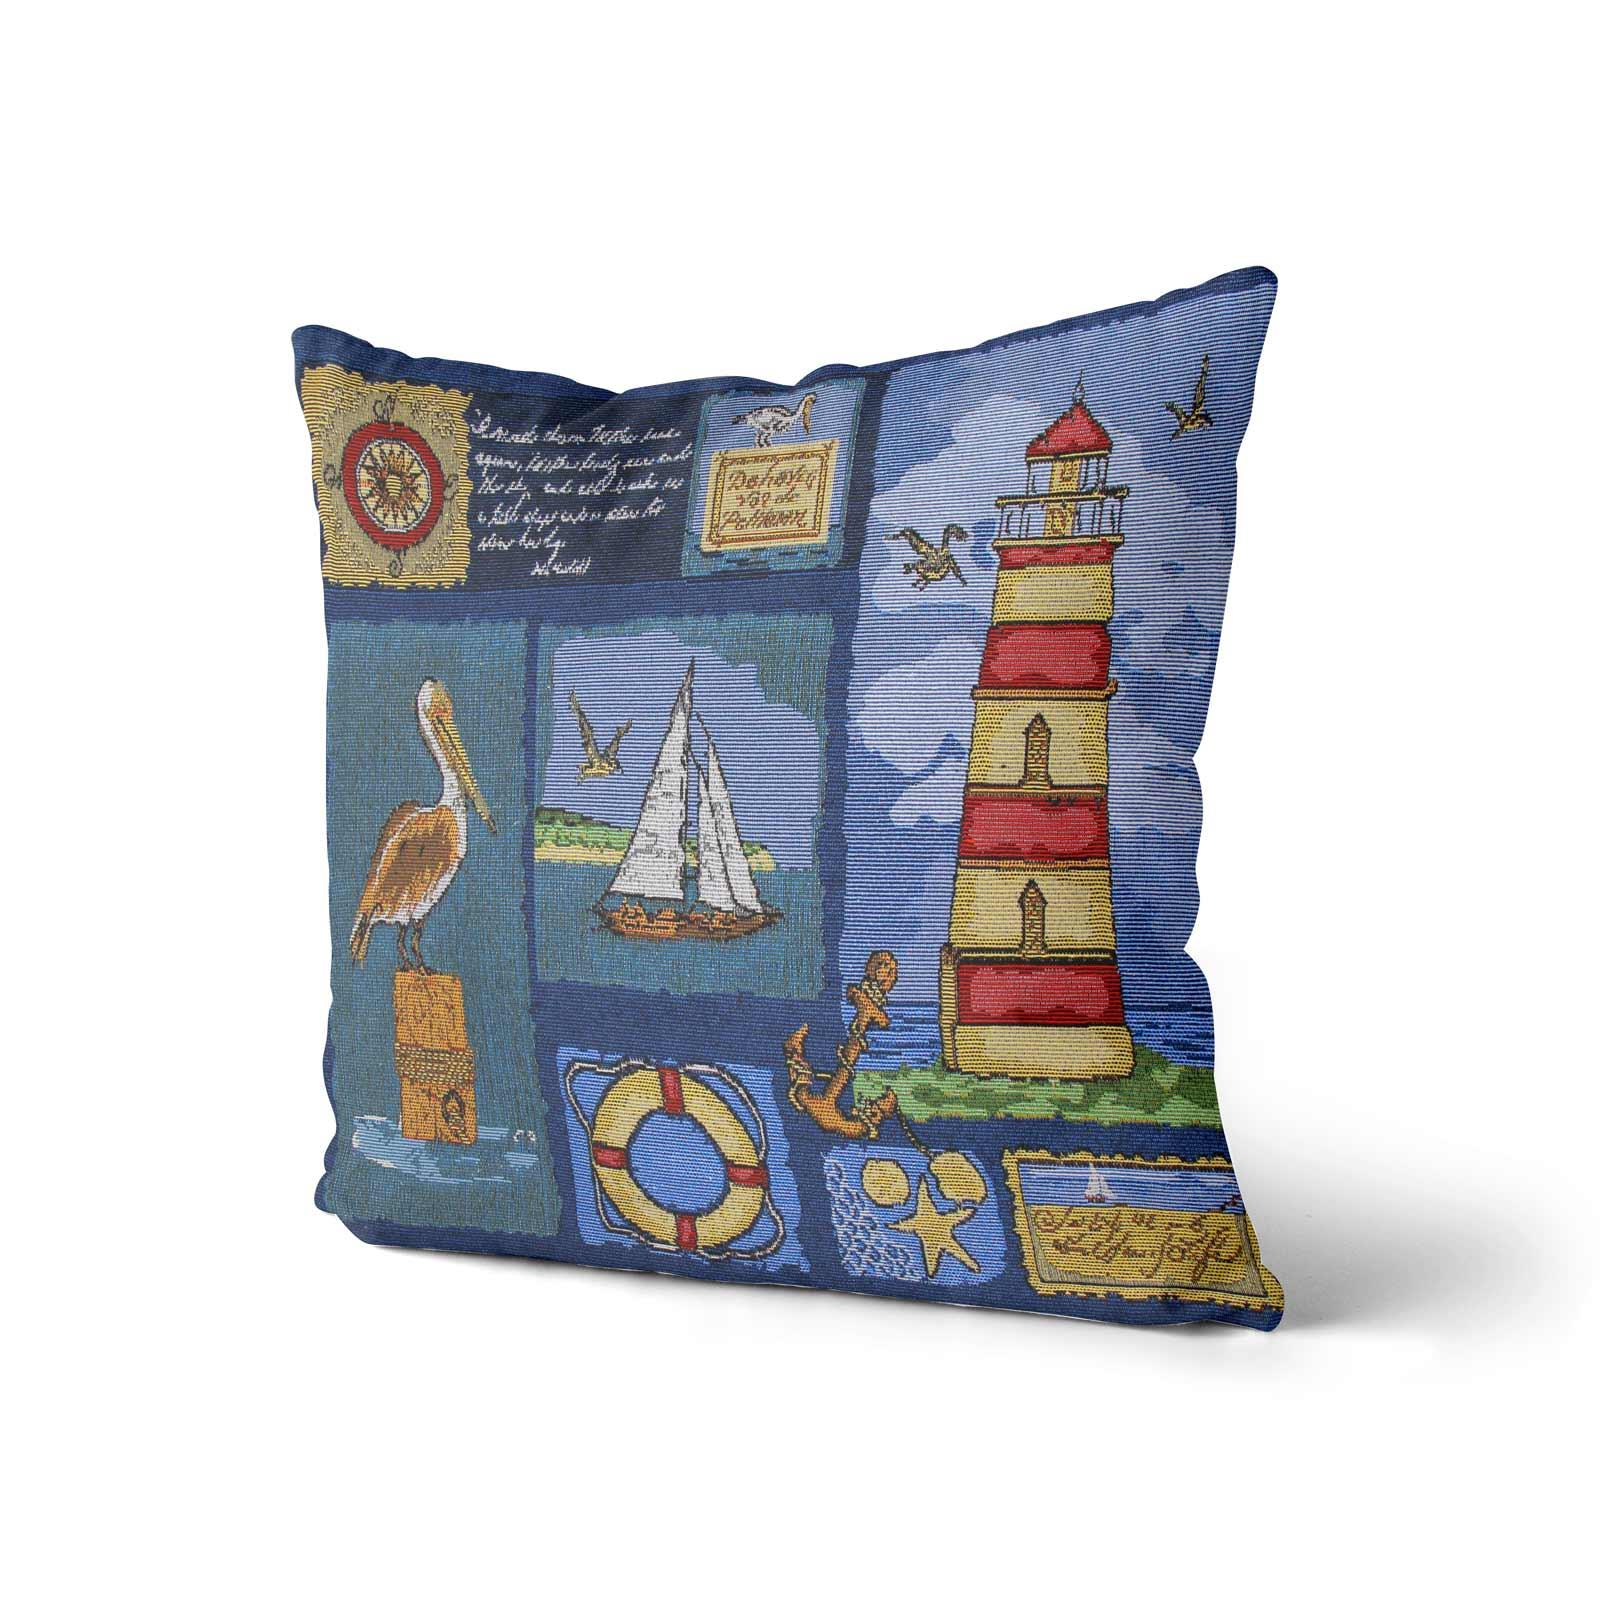 Tapestry-Cushion-Covers-Vintage-Pillow-Cover-Collection-18-034-45cm-Filled-Cushions thumbnail 165